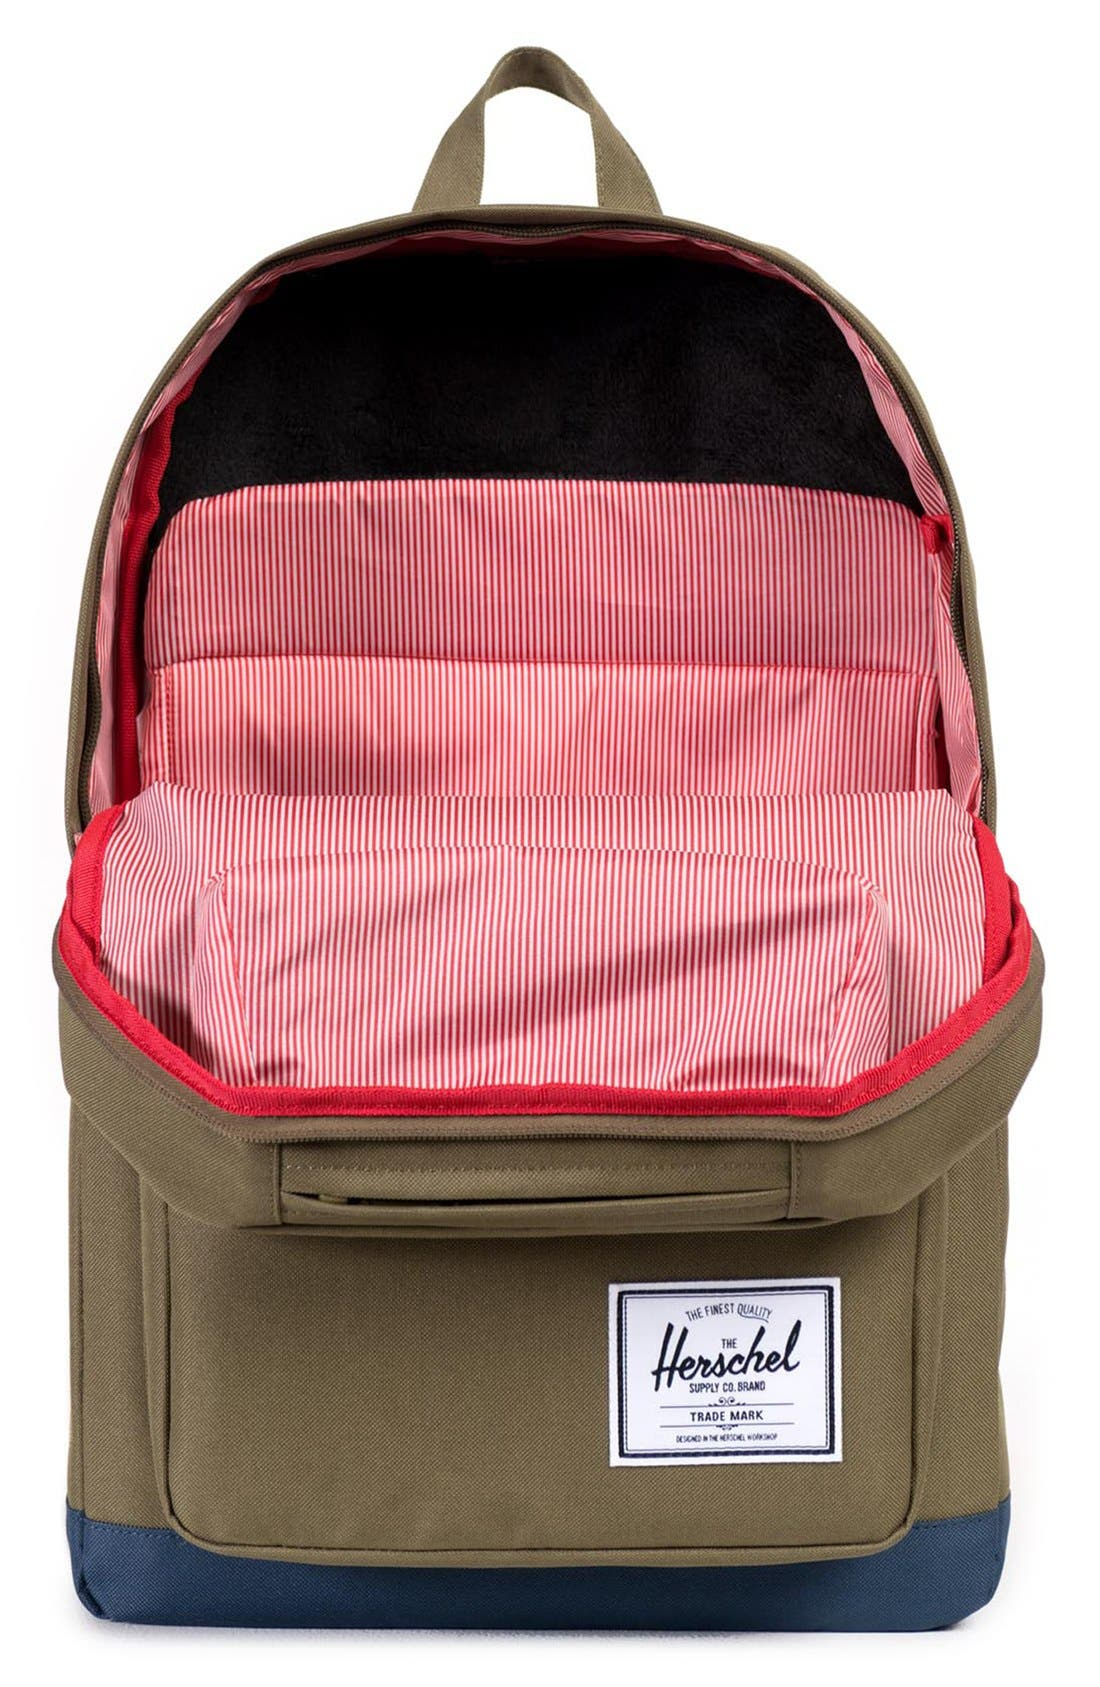 'Pop Quiz' Backpack,                             Alternate thumbnail 3, color,                             Army/ Navy